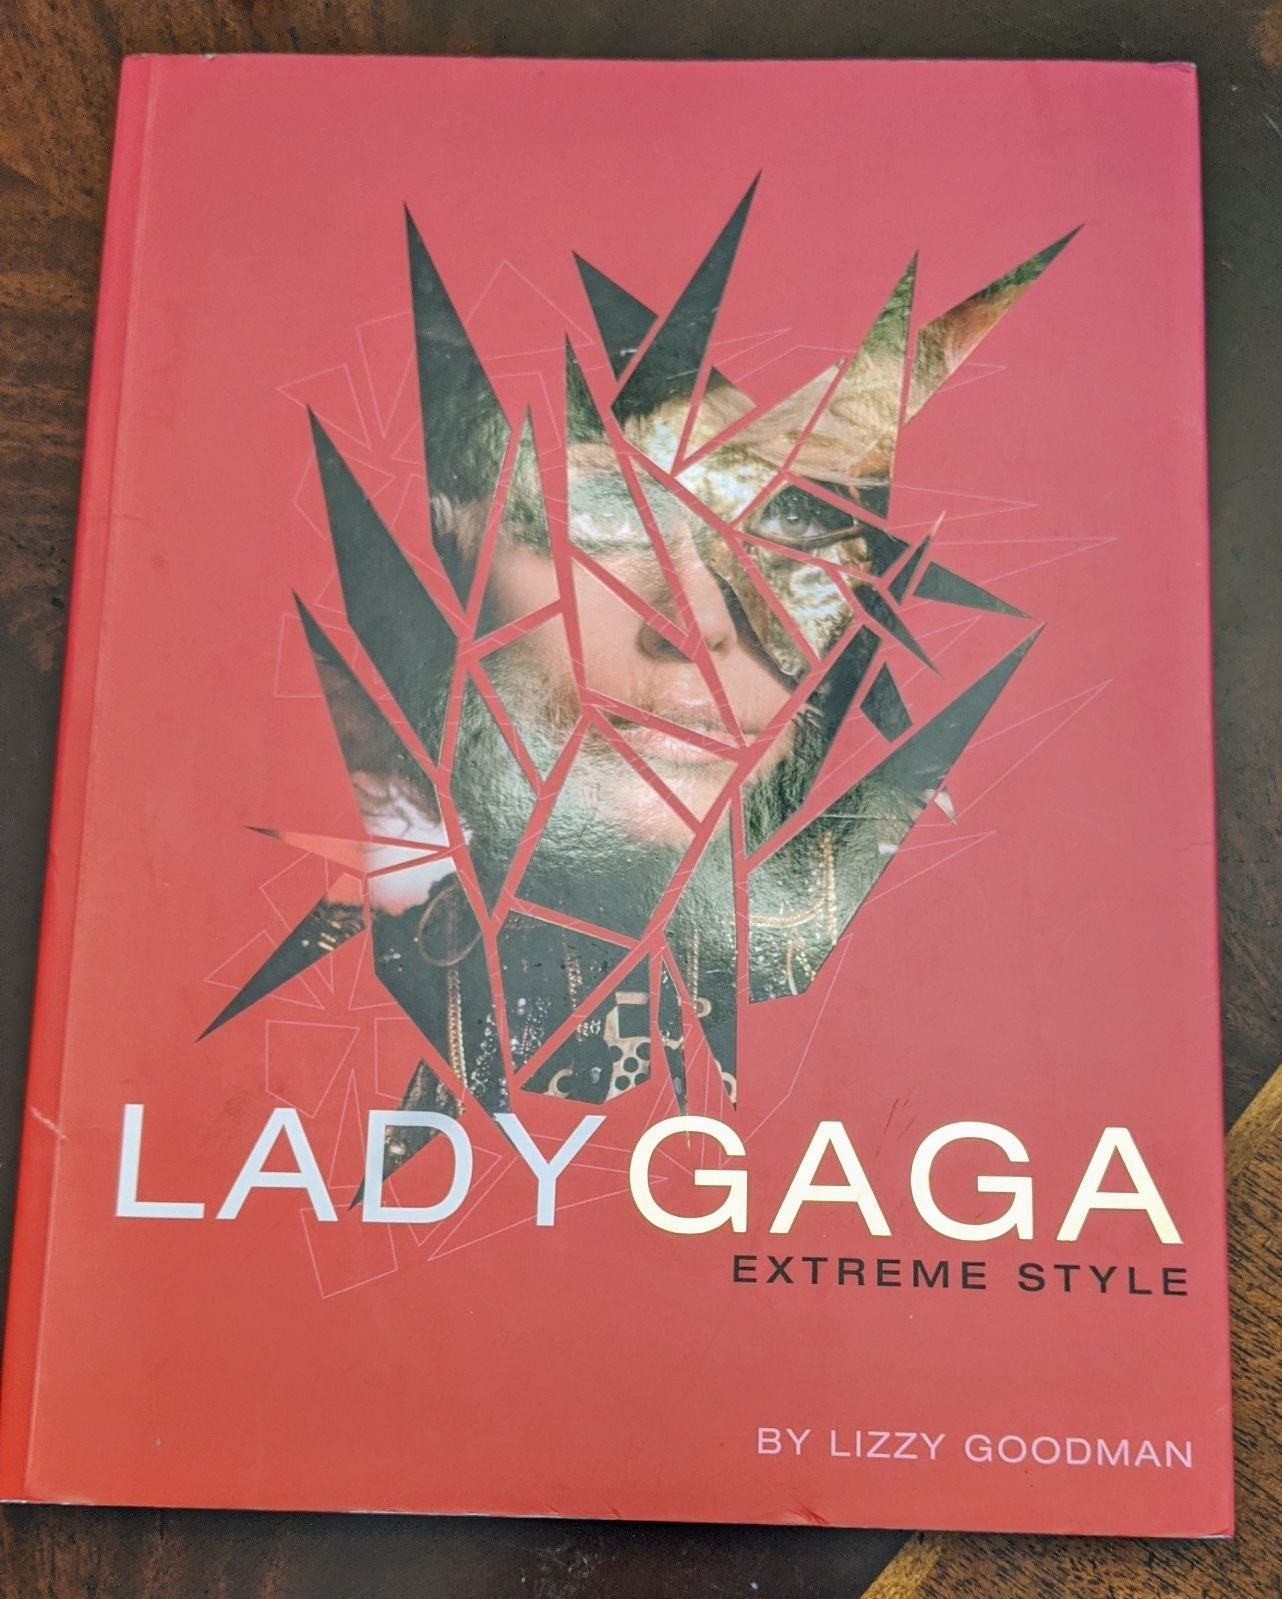 Lady Gaga Extreme Style book by Lizzy Go